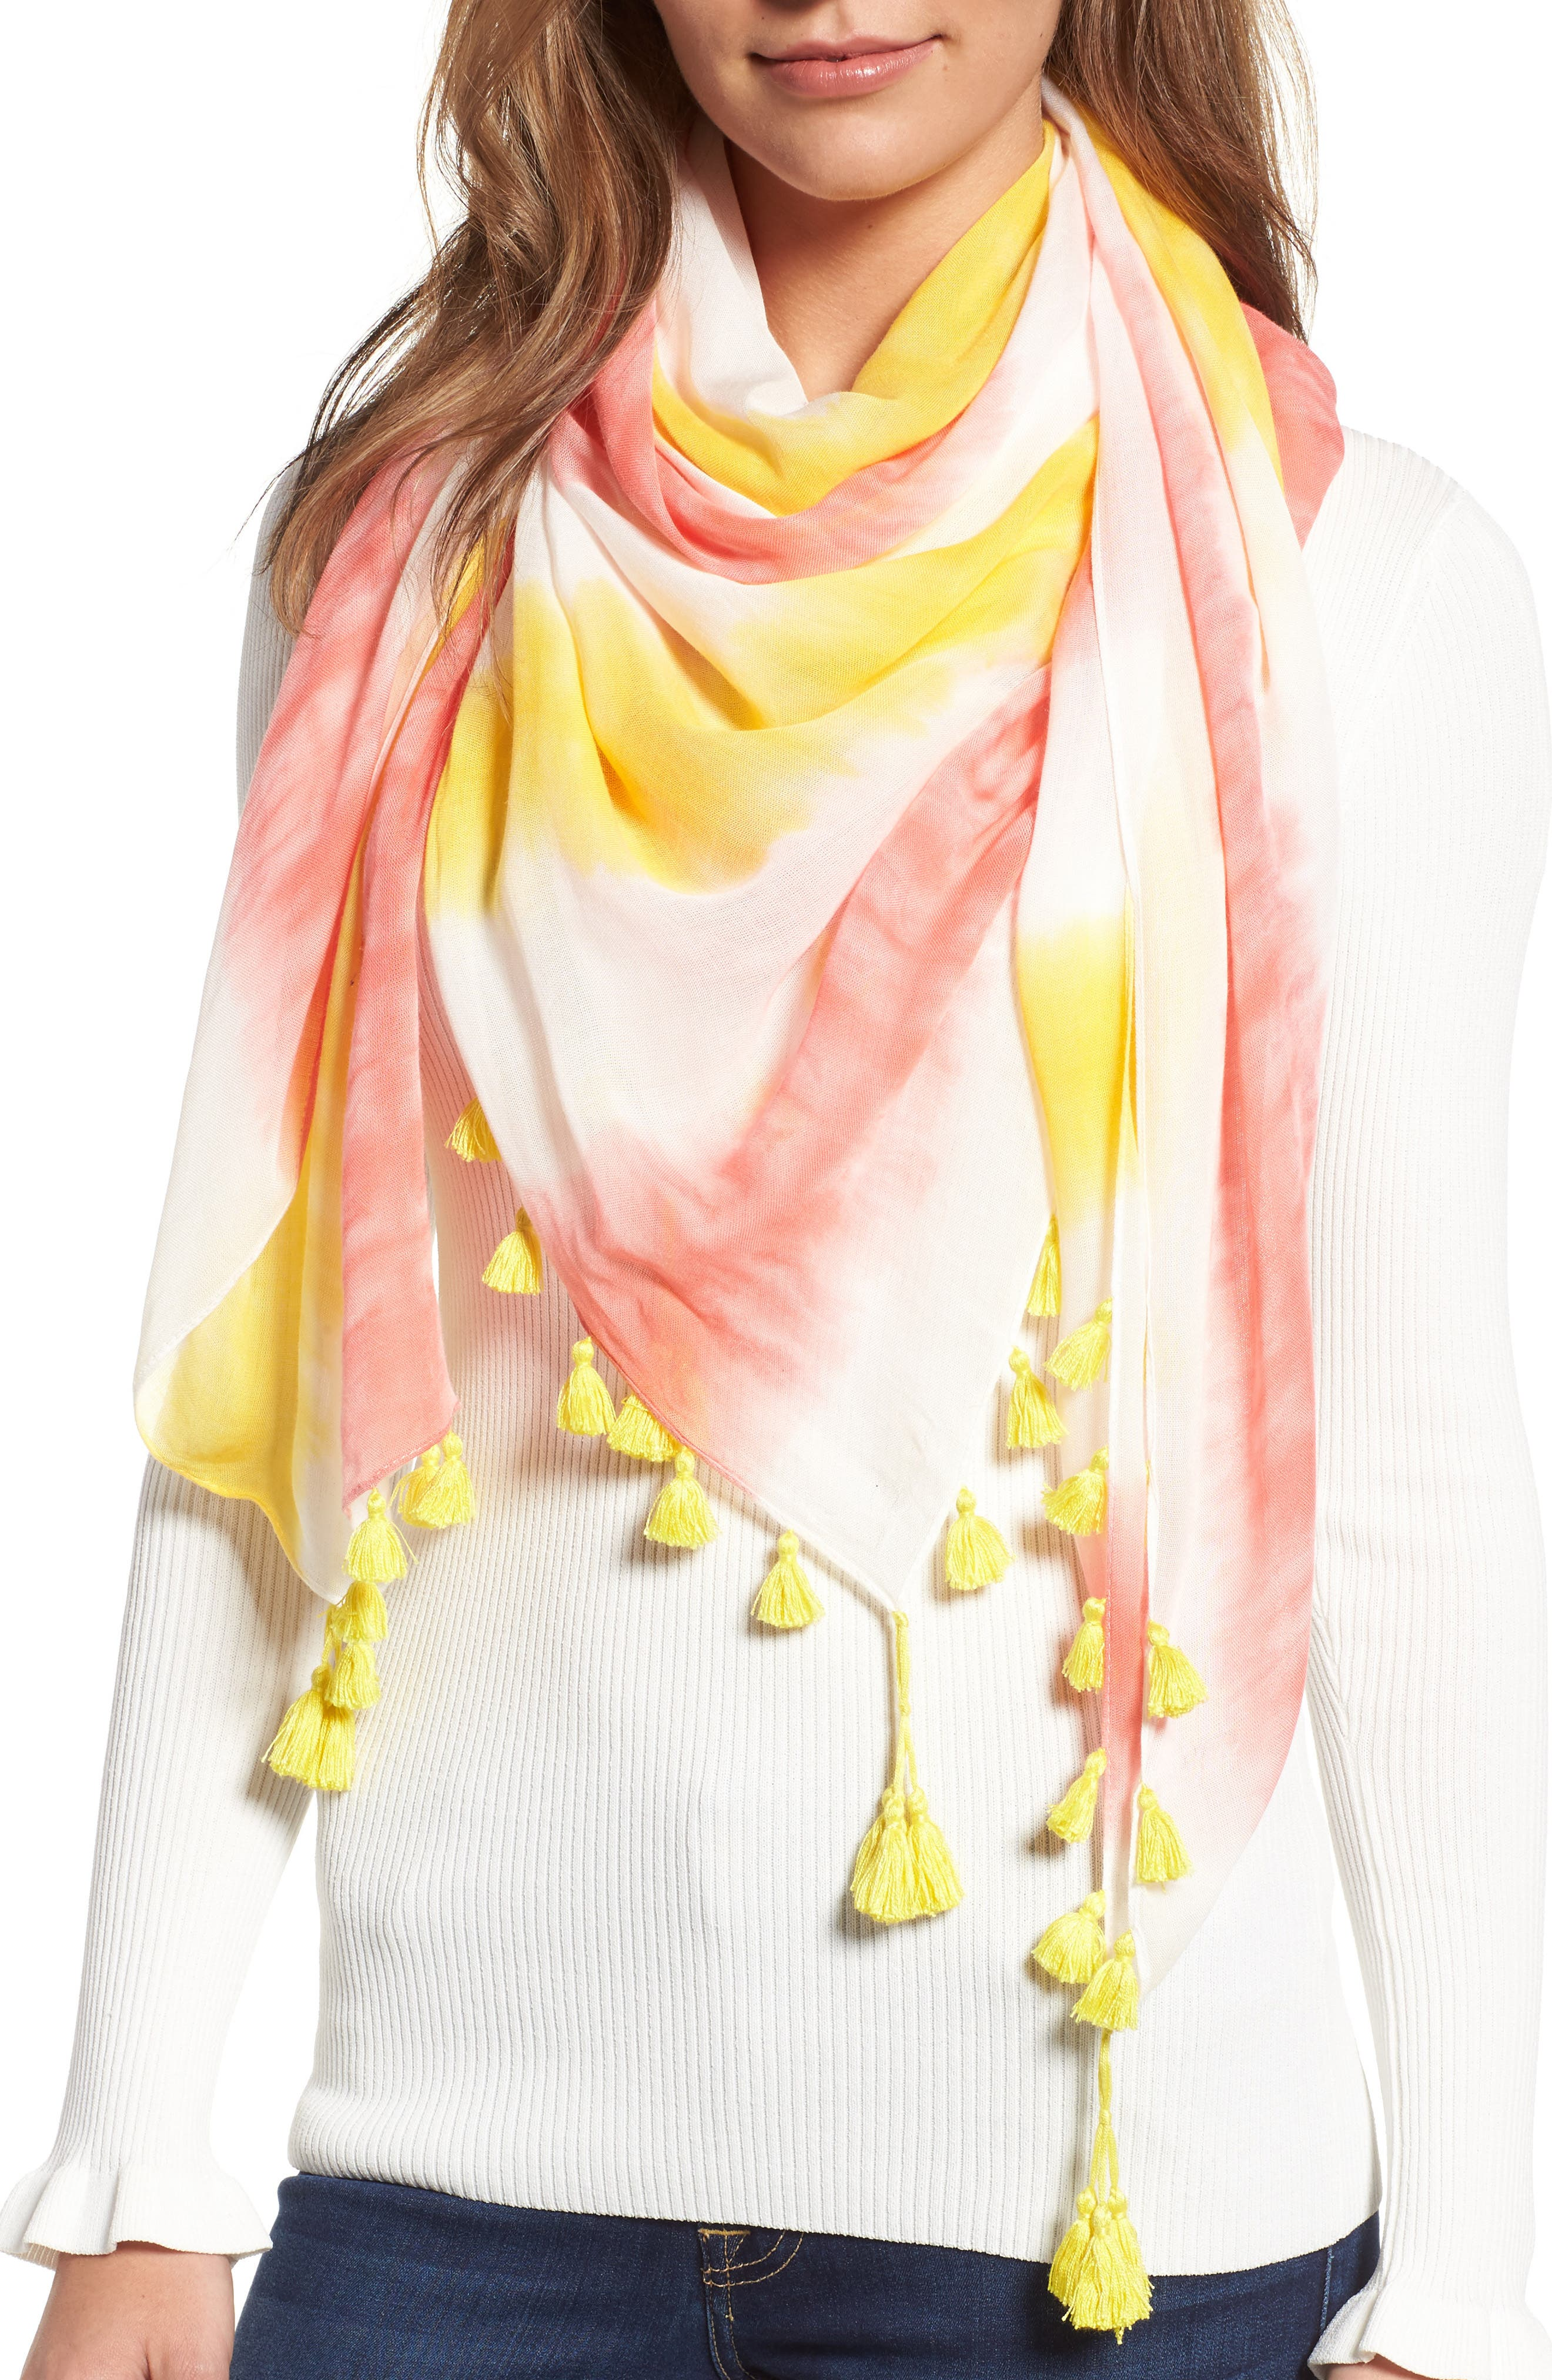 Alternate Image 1 Selected - Rebecca Minkoff Tie Dye Square Scarf